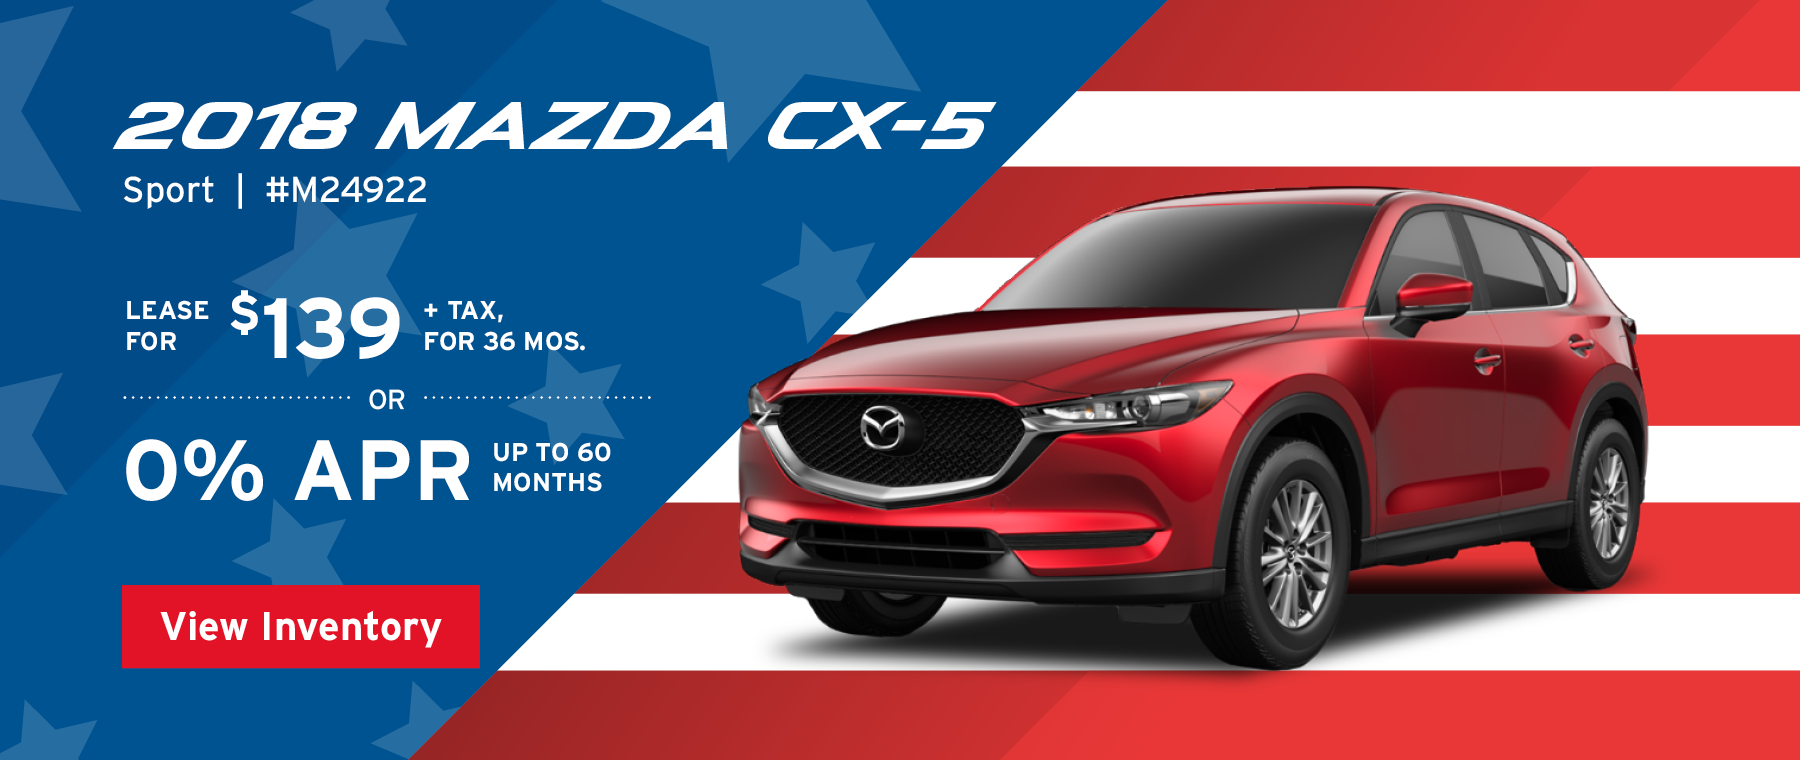 Lease the 2018 Mazda CX-5 Sport for $139, plus tax for 36 months, or 0% APR up to 60 months.